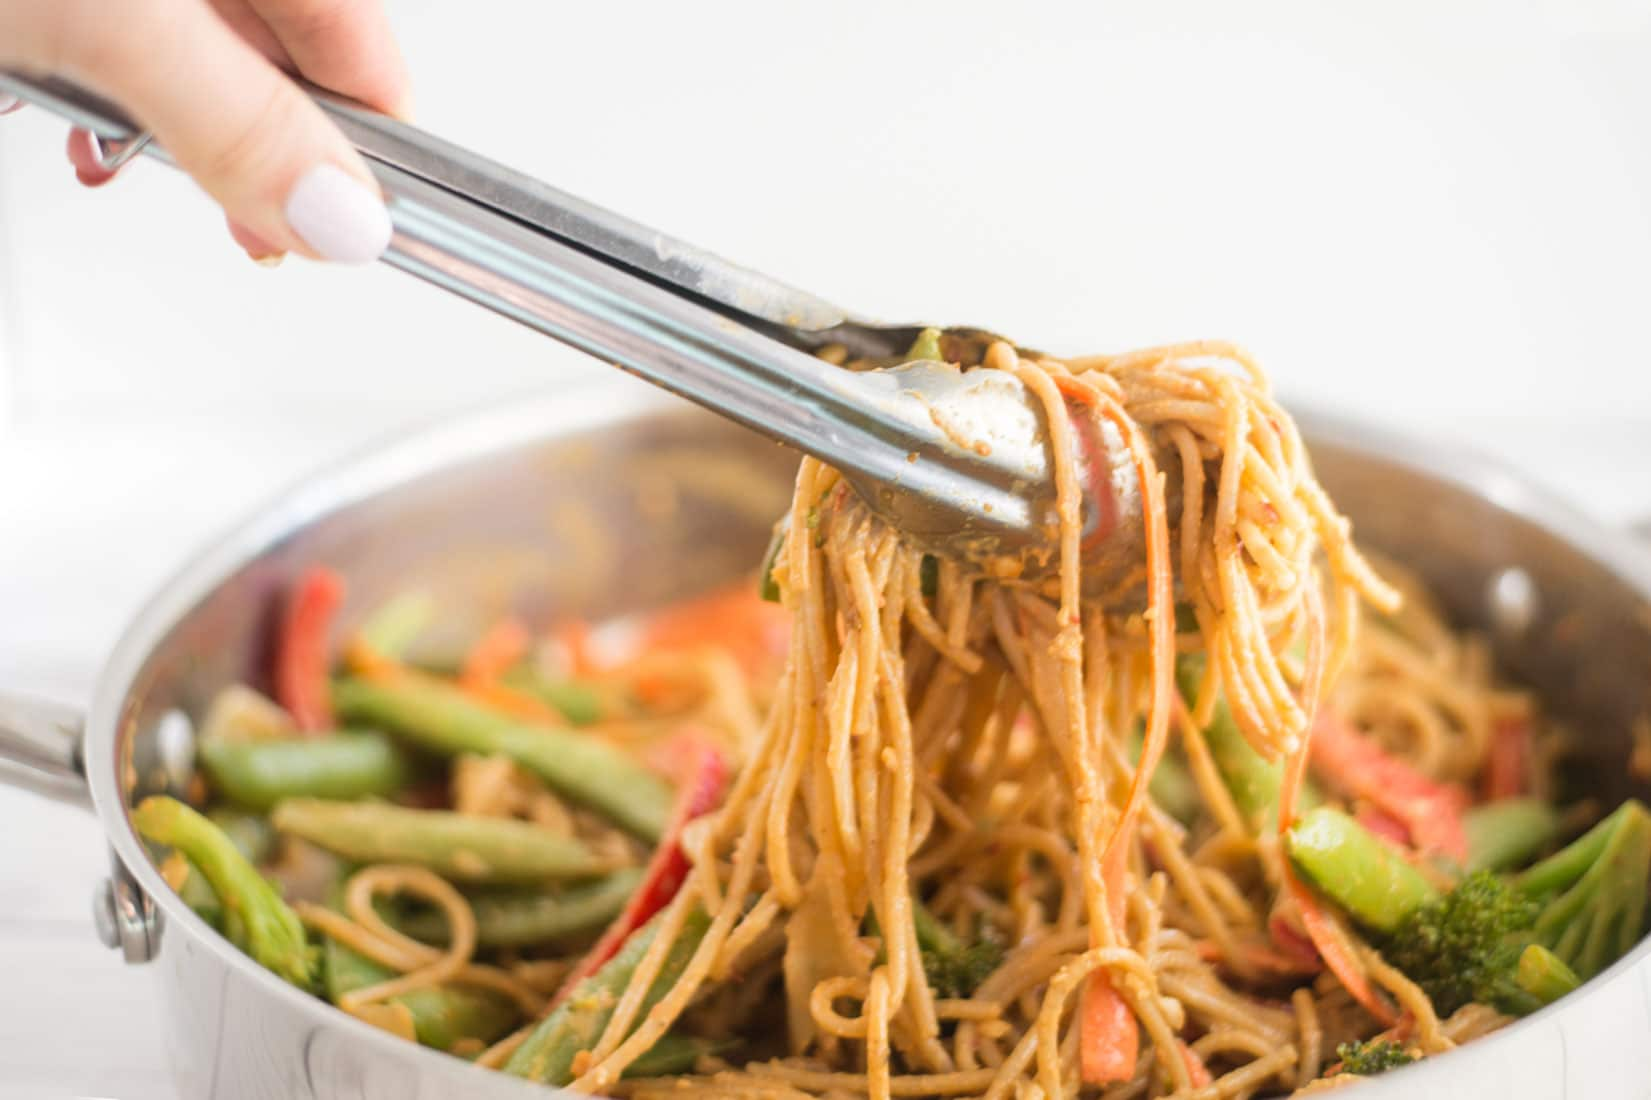 hand using tongs to grab peanut noodles out of pan